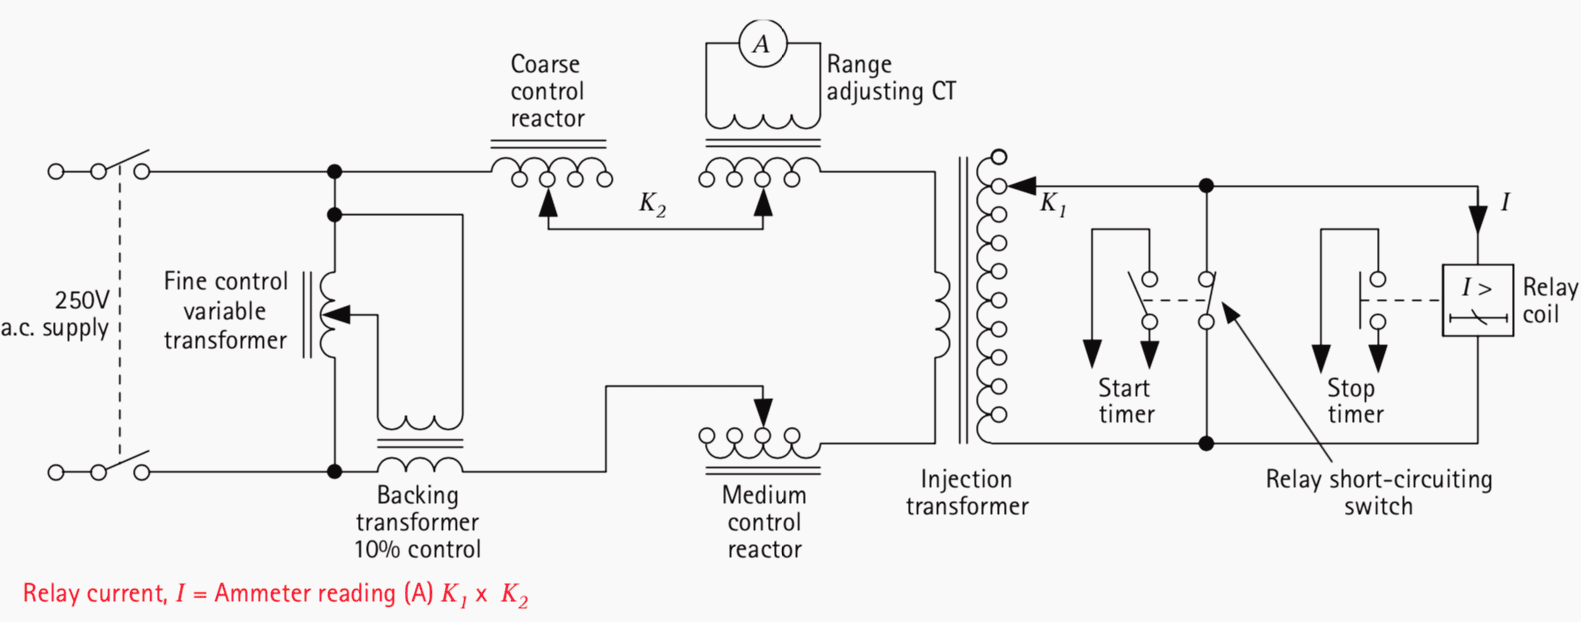 current relay operation